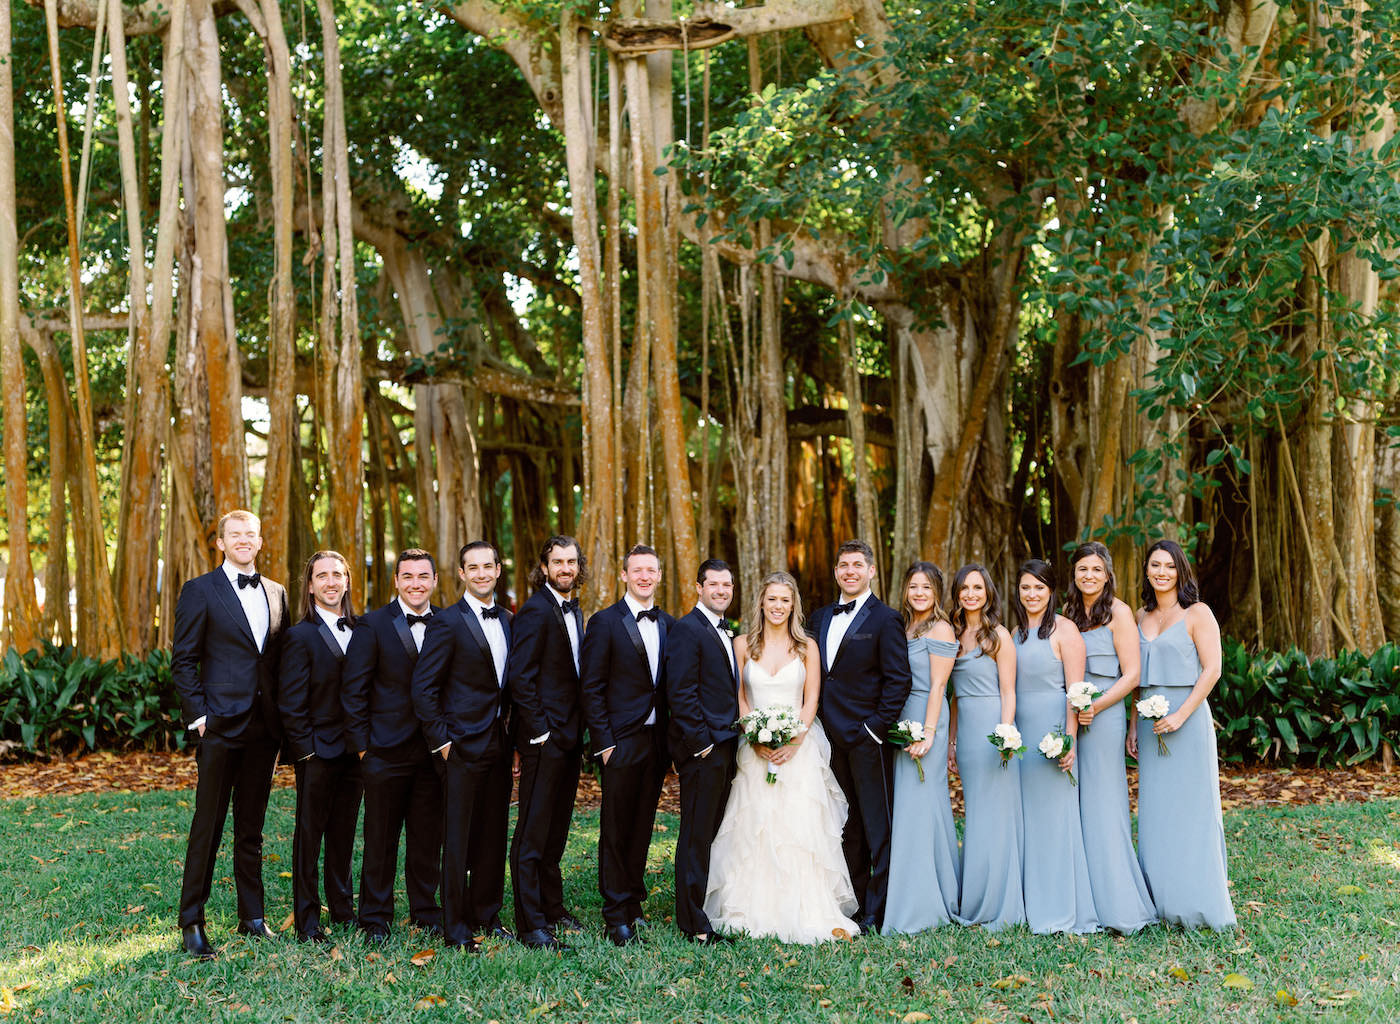 Florida Modern Wedding Party, Large Bridal Party, Bridesmaids in Mix and Match Slate Gray Dresses, Groom and Groomsmen in Classic Back Tuxedos with Bowties | Sarasota Wedding Planner NK Weddings